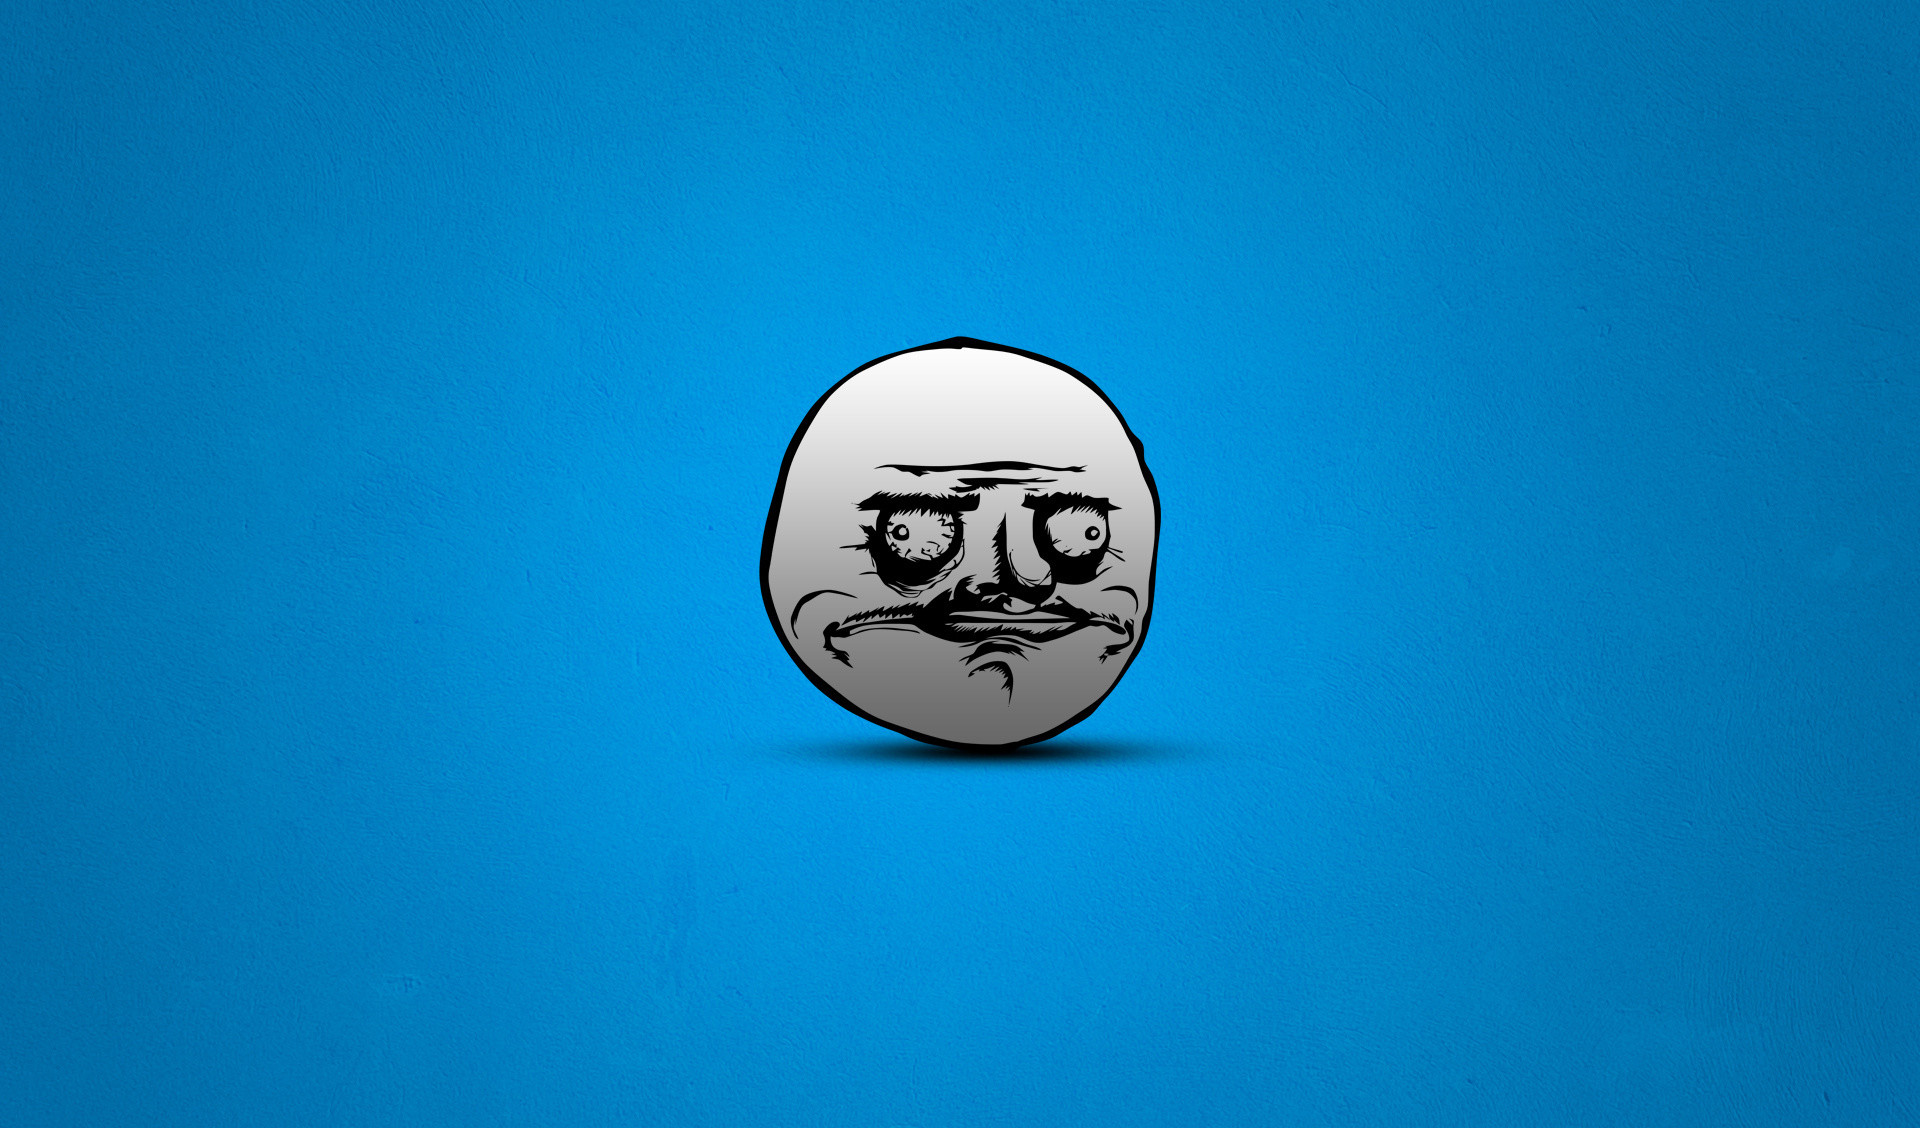 1920x1128 Troll Face Meme HD Wallpaper With Fully Blue Color